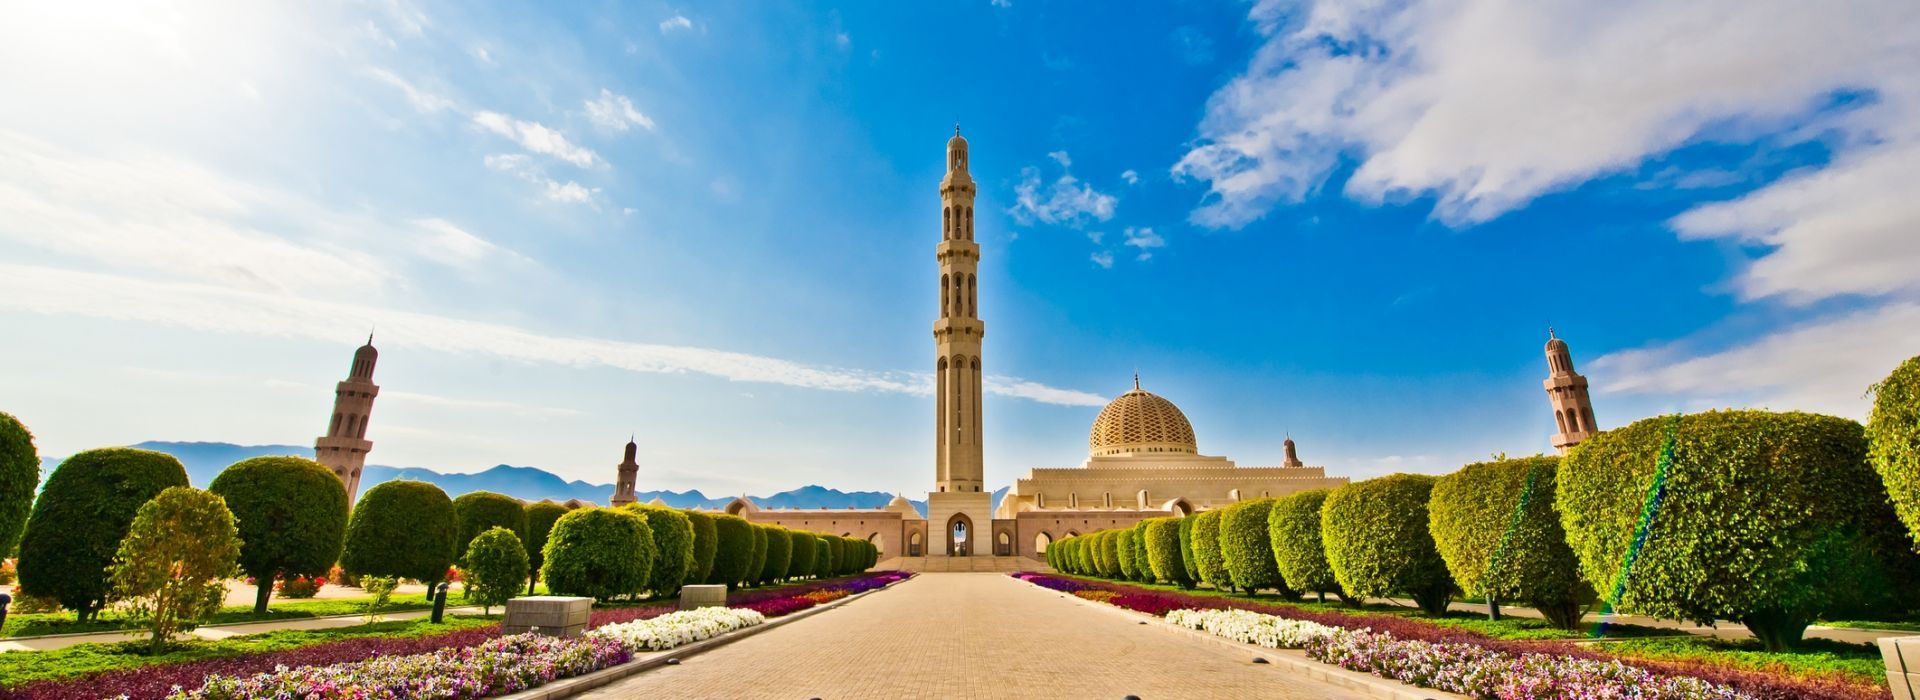 Sightseeing, attractions, culture and history Tours in Oman